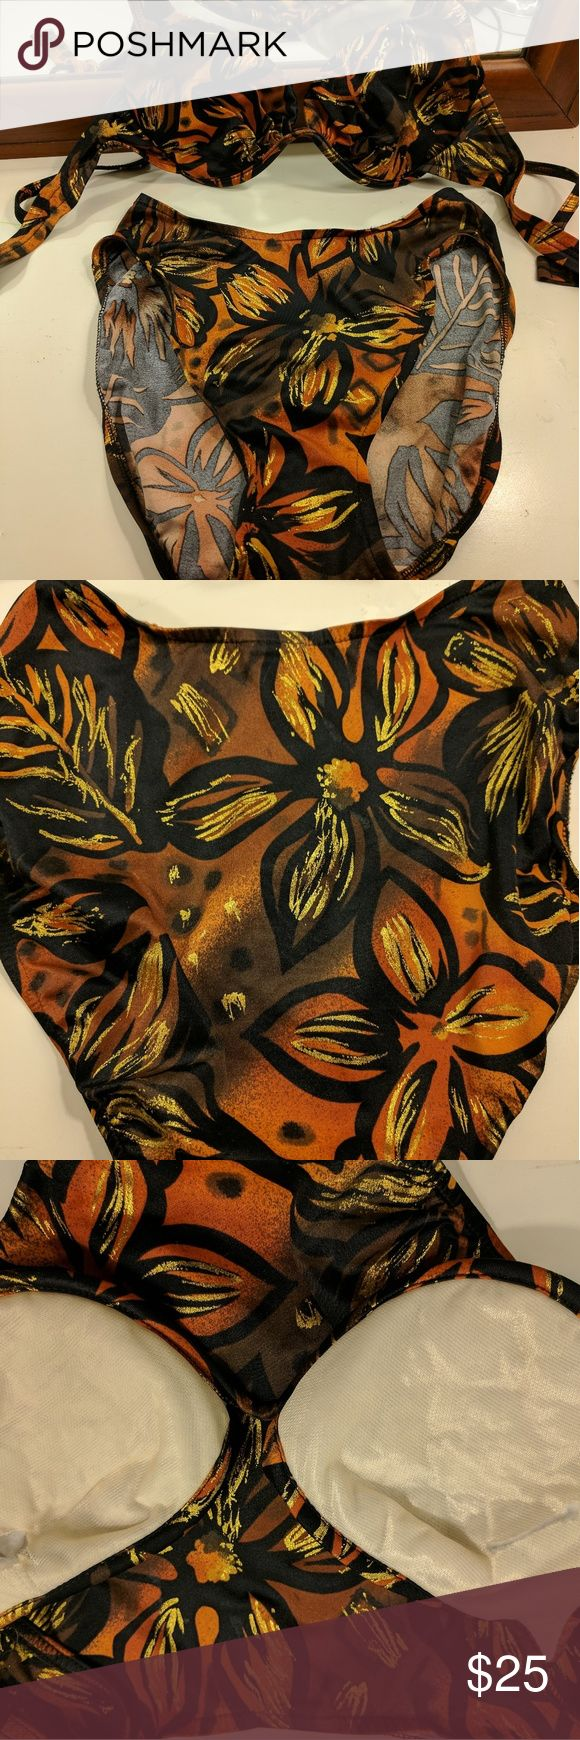 Vintage Hi Rise Bikini size M 36/C Never worn.. very beautiful and trendy with the hi rise bottoms and structured top.. colors are gold, orange, browns, blacks.. I cut the extra padding out as you can see in picture #3.. Doesn't distort at all.. If you need measurements please just ask.  I consider ALL offers, yes even the low ball ones 😉 I'll counter with my lowest.. please consider bundling as i do offer a 20% off just 2 items.. if you bundle stuff up, instead of just liking... I'll also…